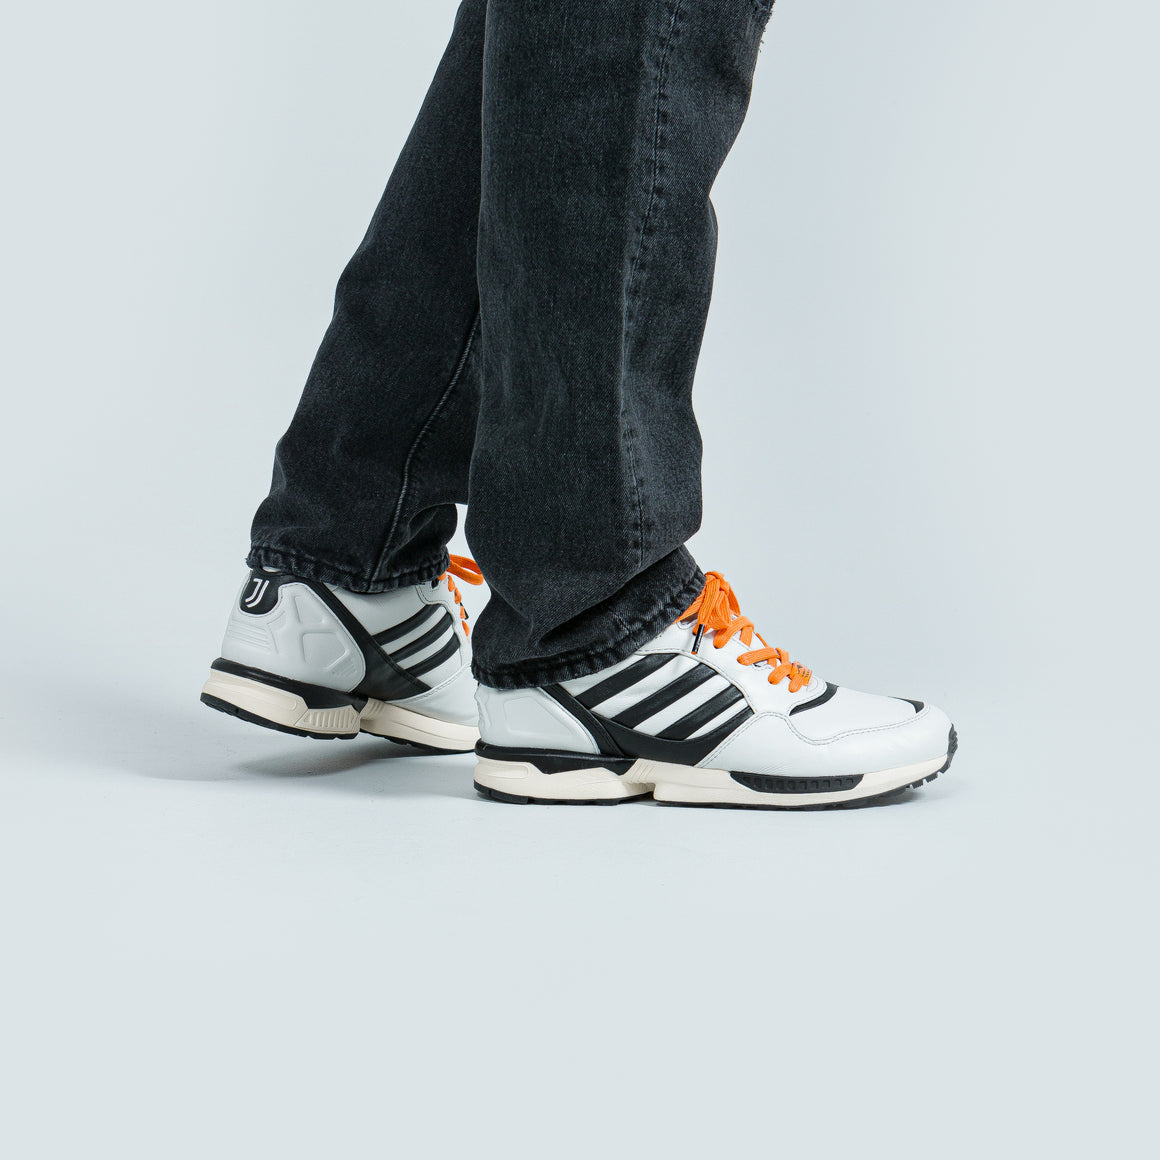 adidas - ZX 6000 x Juventus - Crystal White - Up There